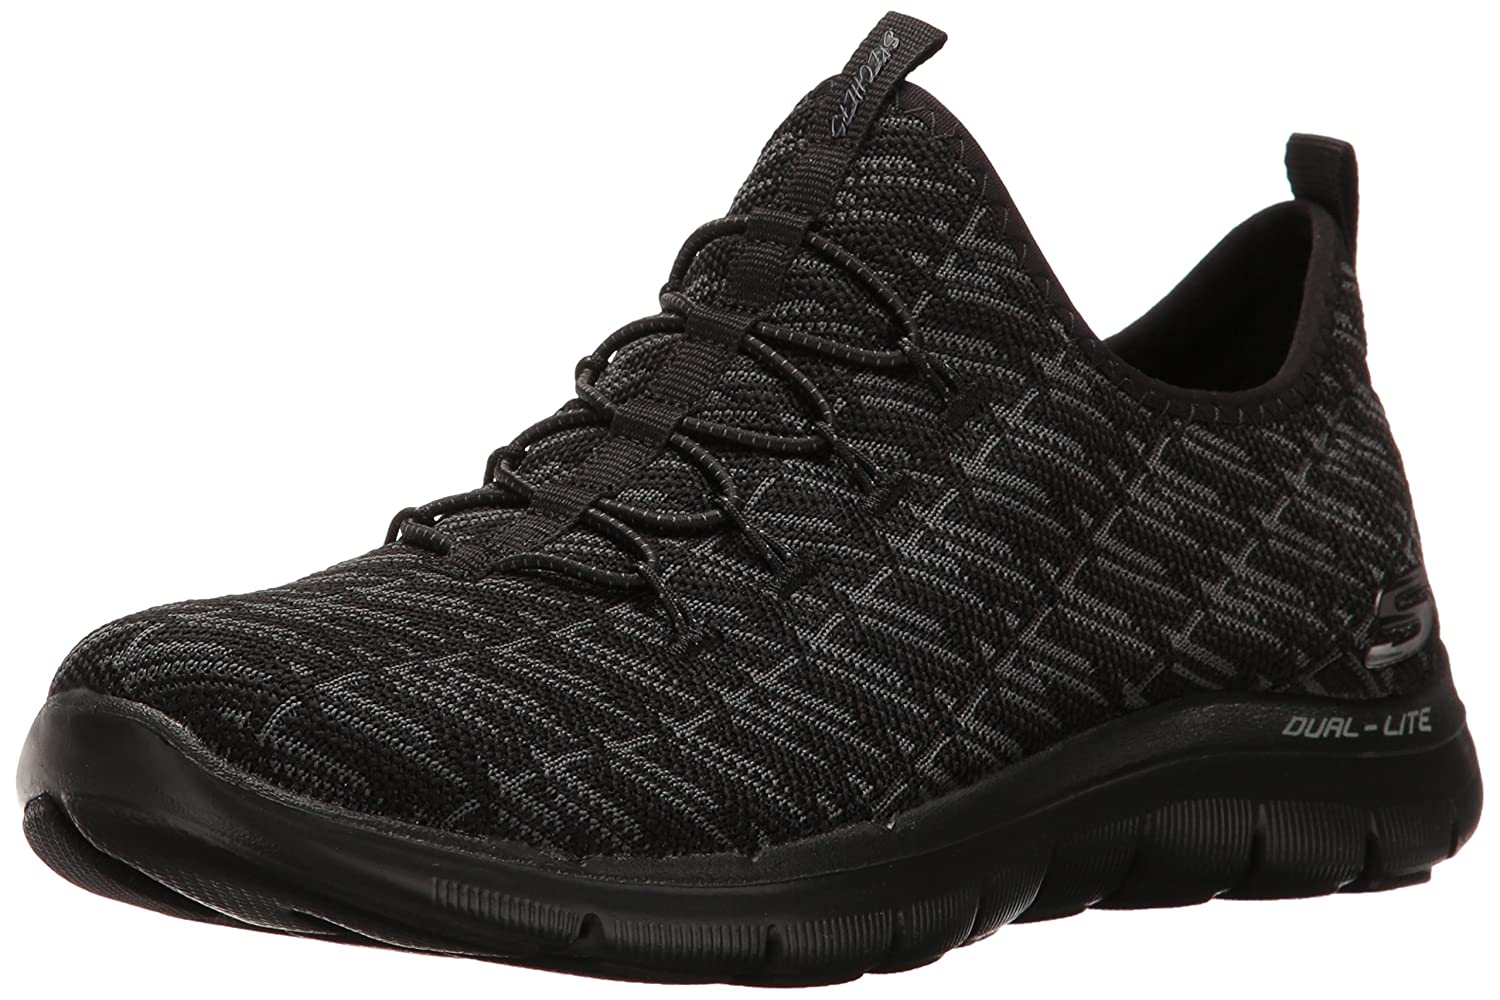 Skechers Women's Flex Appeal 2.0 Insight Sneaker B06XW8XSWJ 7.5|Black